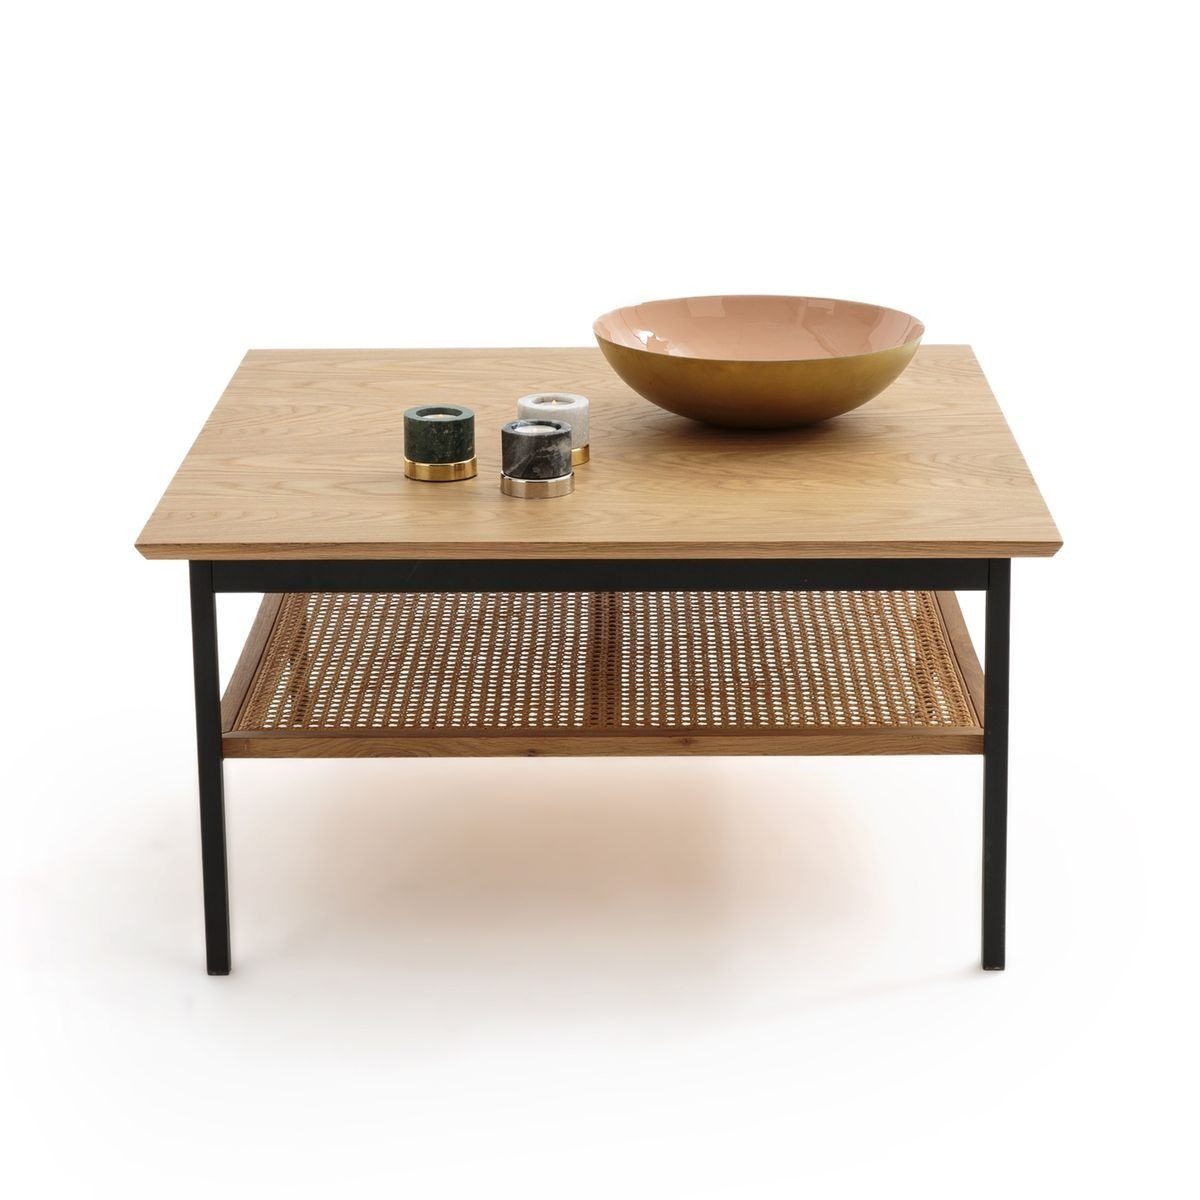 Table Basse Chene Et Cannage Table Basse Cannage Table Basse Nature Table Basse Vintage Tendance En 2020 Table Basse Carree Table Basse Table Basse Rotin